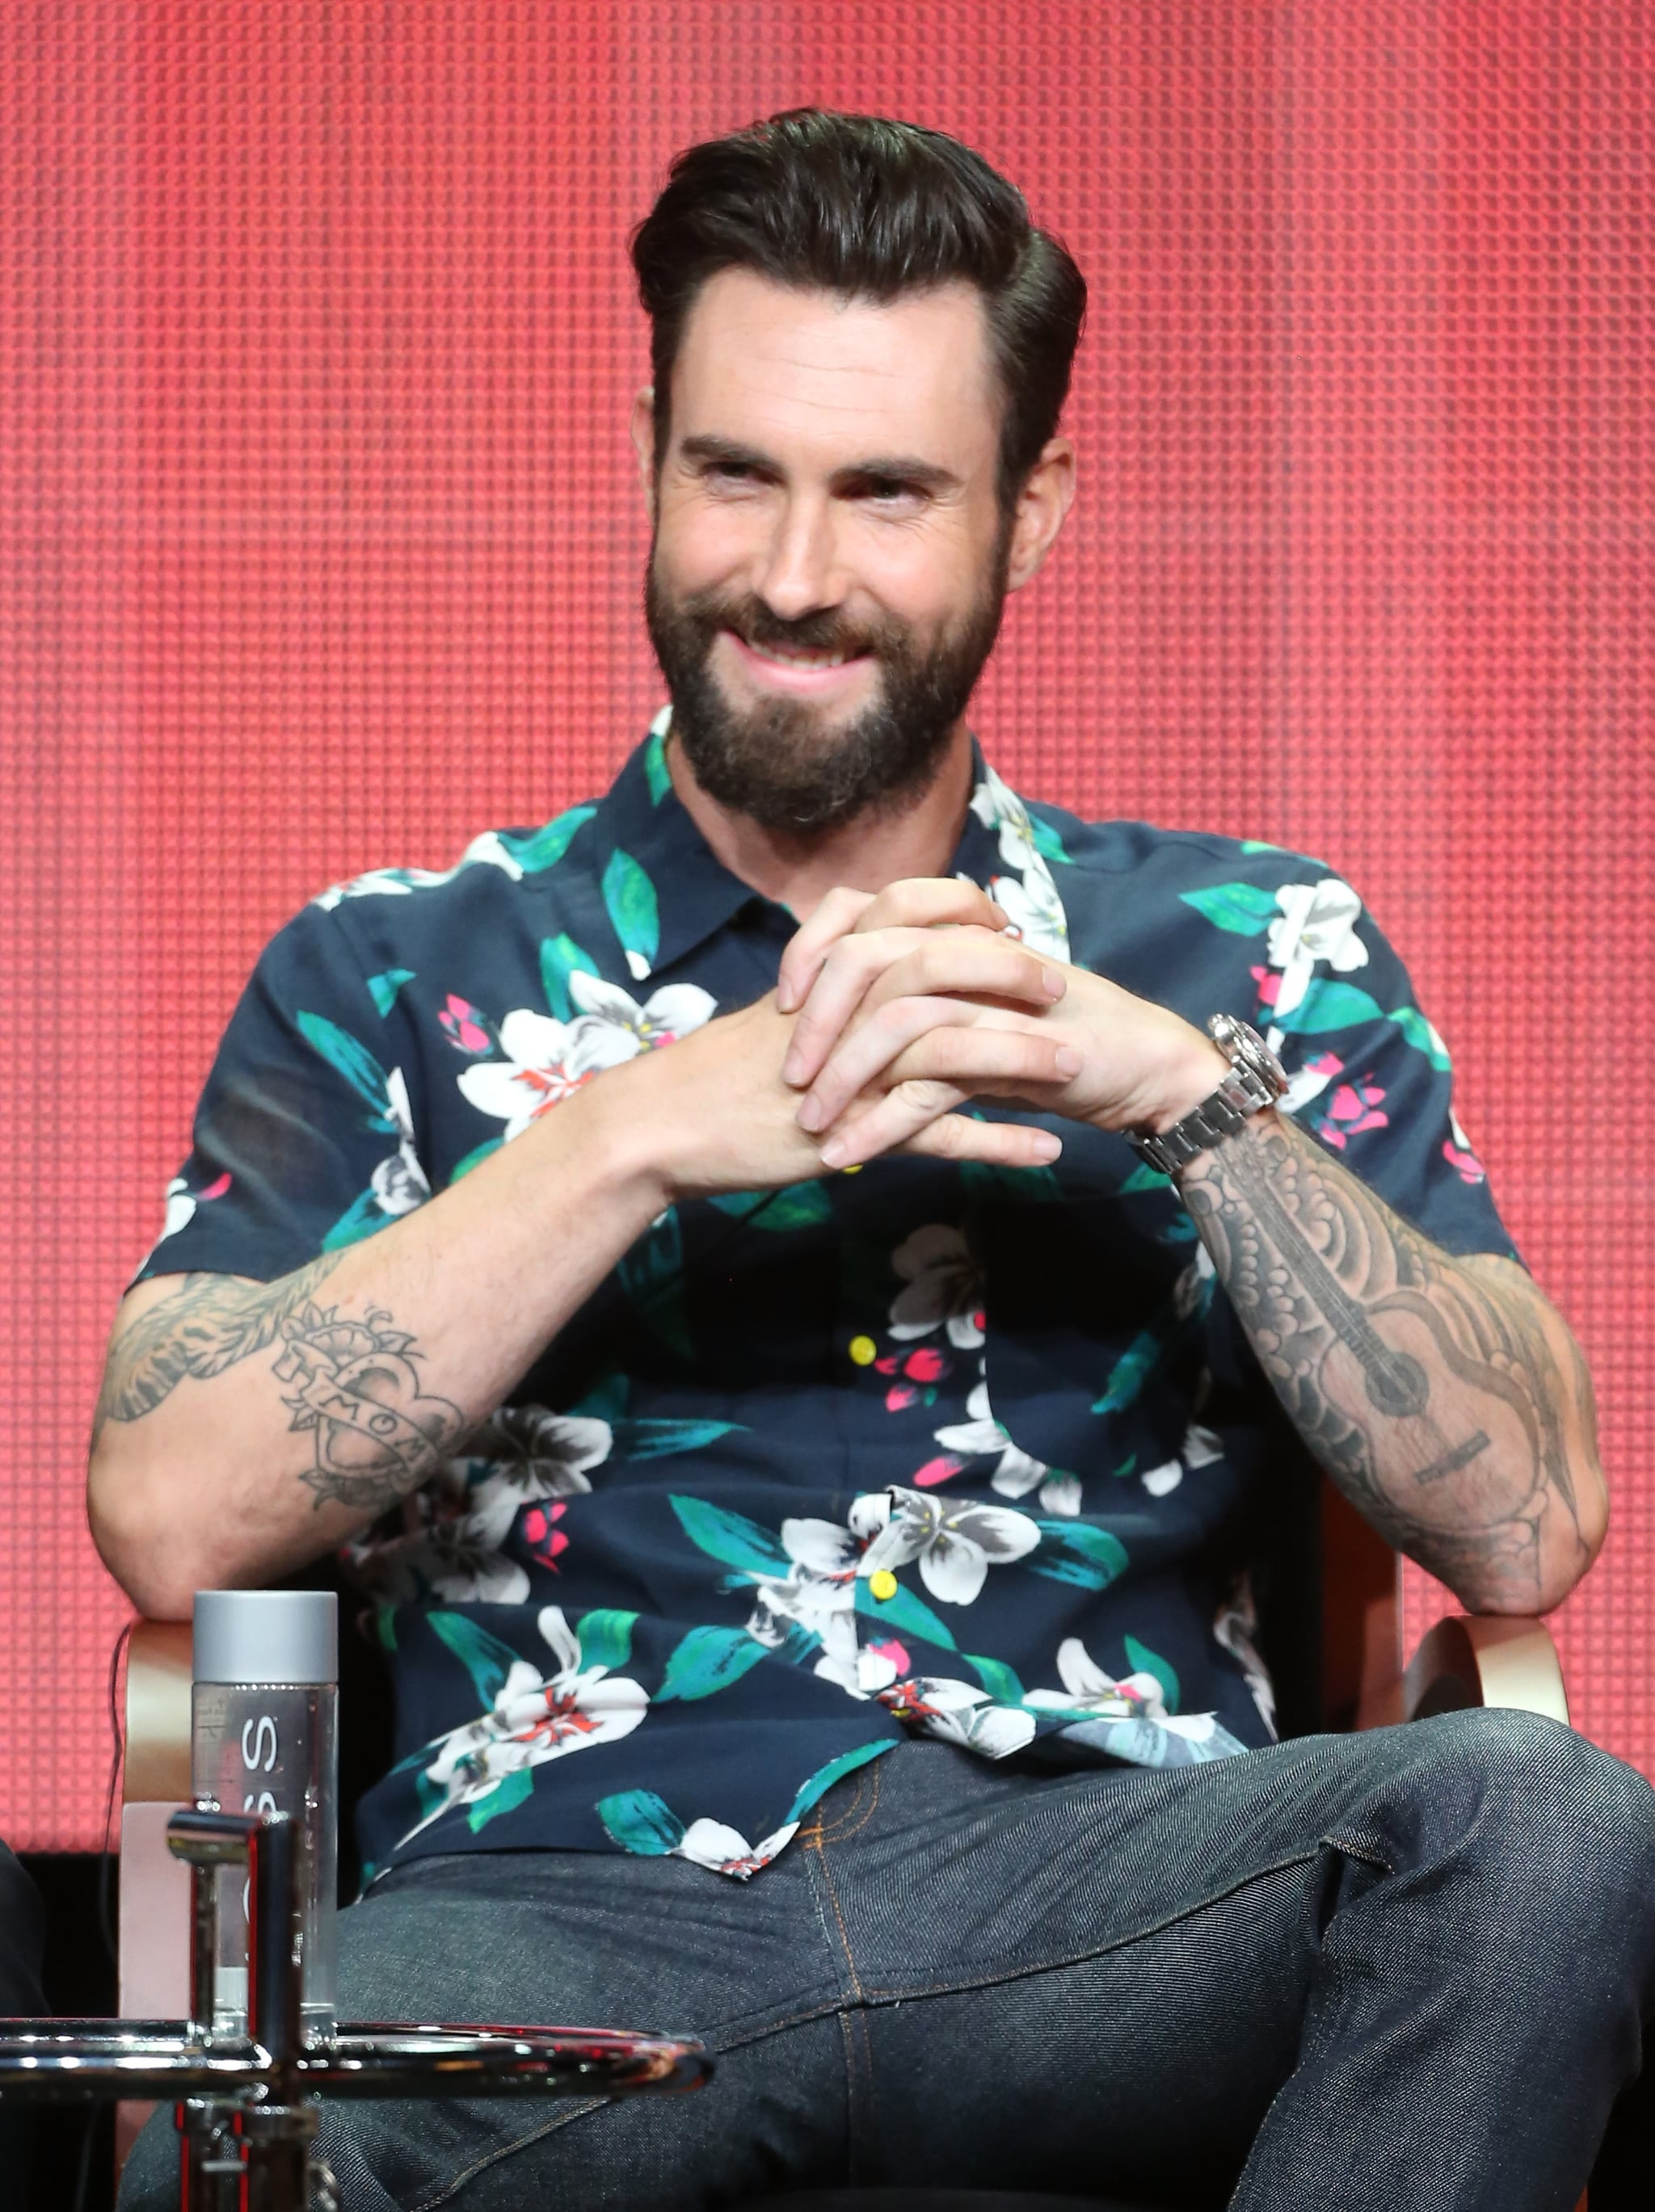 """Adam Levine """"Carson is the most high-profile babysitter in the world."""" — On The Voice host Carson Daly, at the show's panel"""